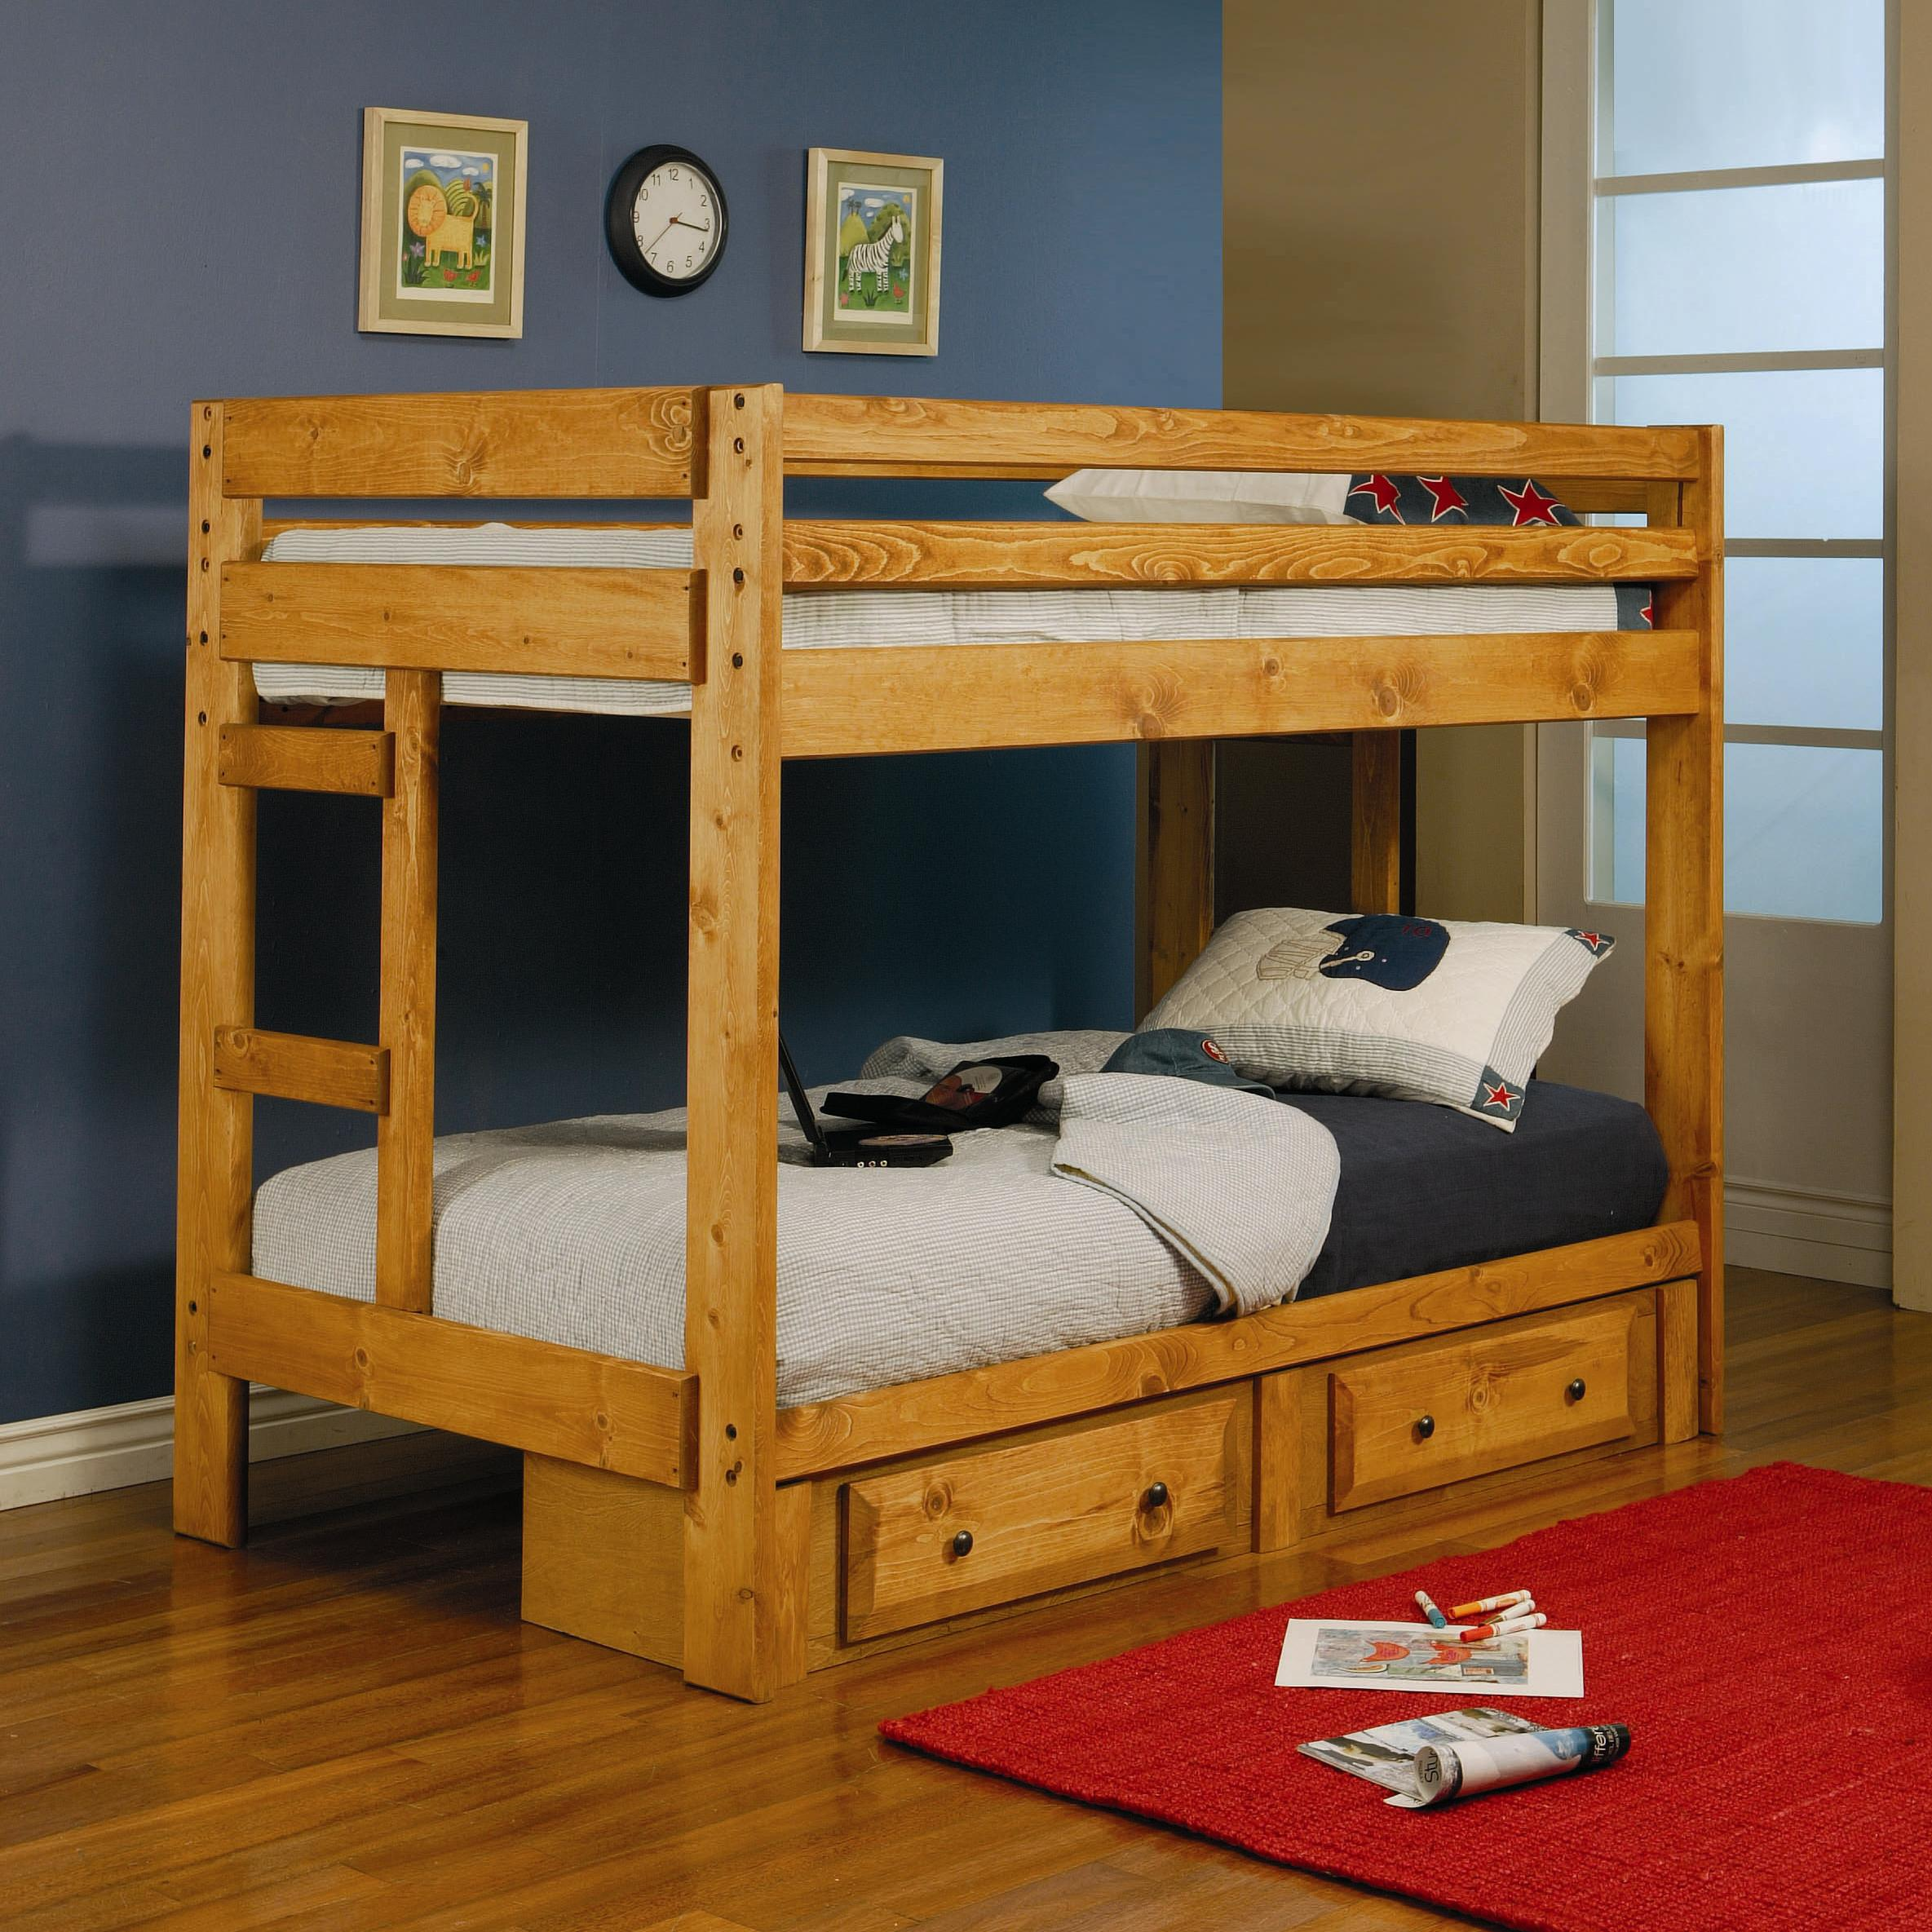 Under Bed Storage Frame Wrangle Hill Twin Over Twin Bunk Bed With Built In Ladders By Coaster At Prime Brothers Furniture